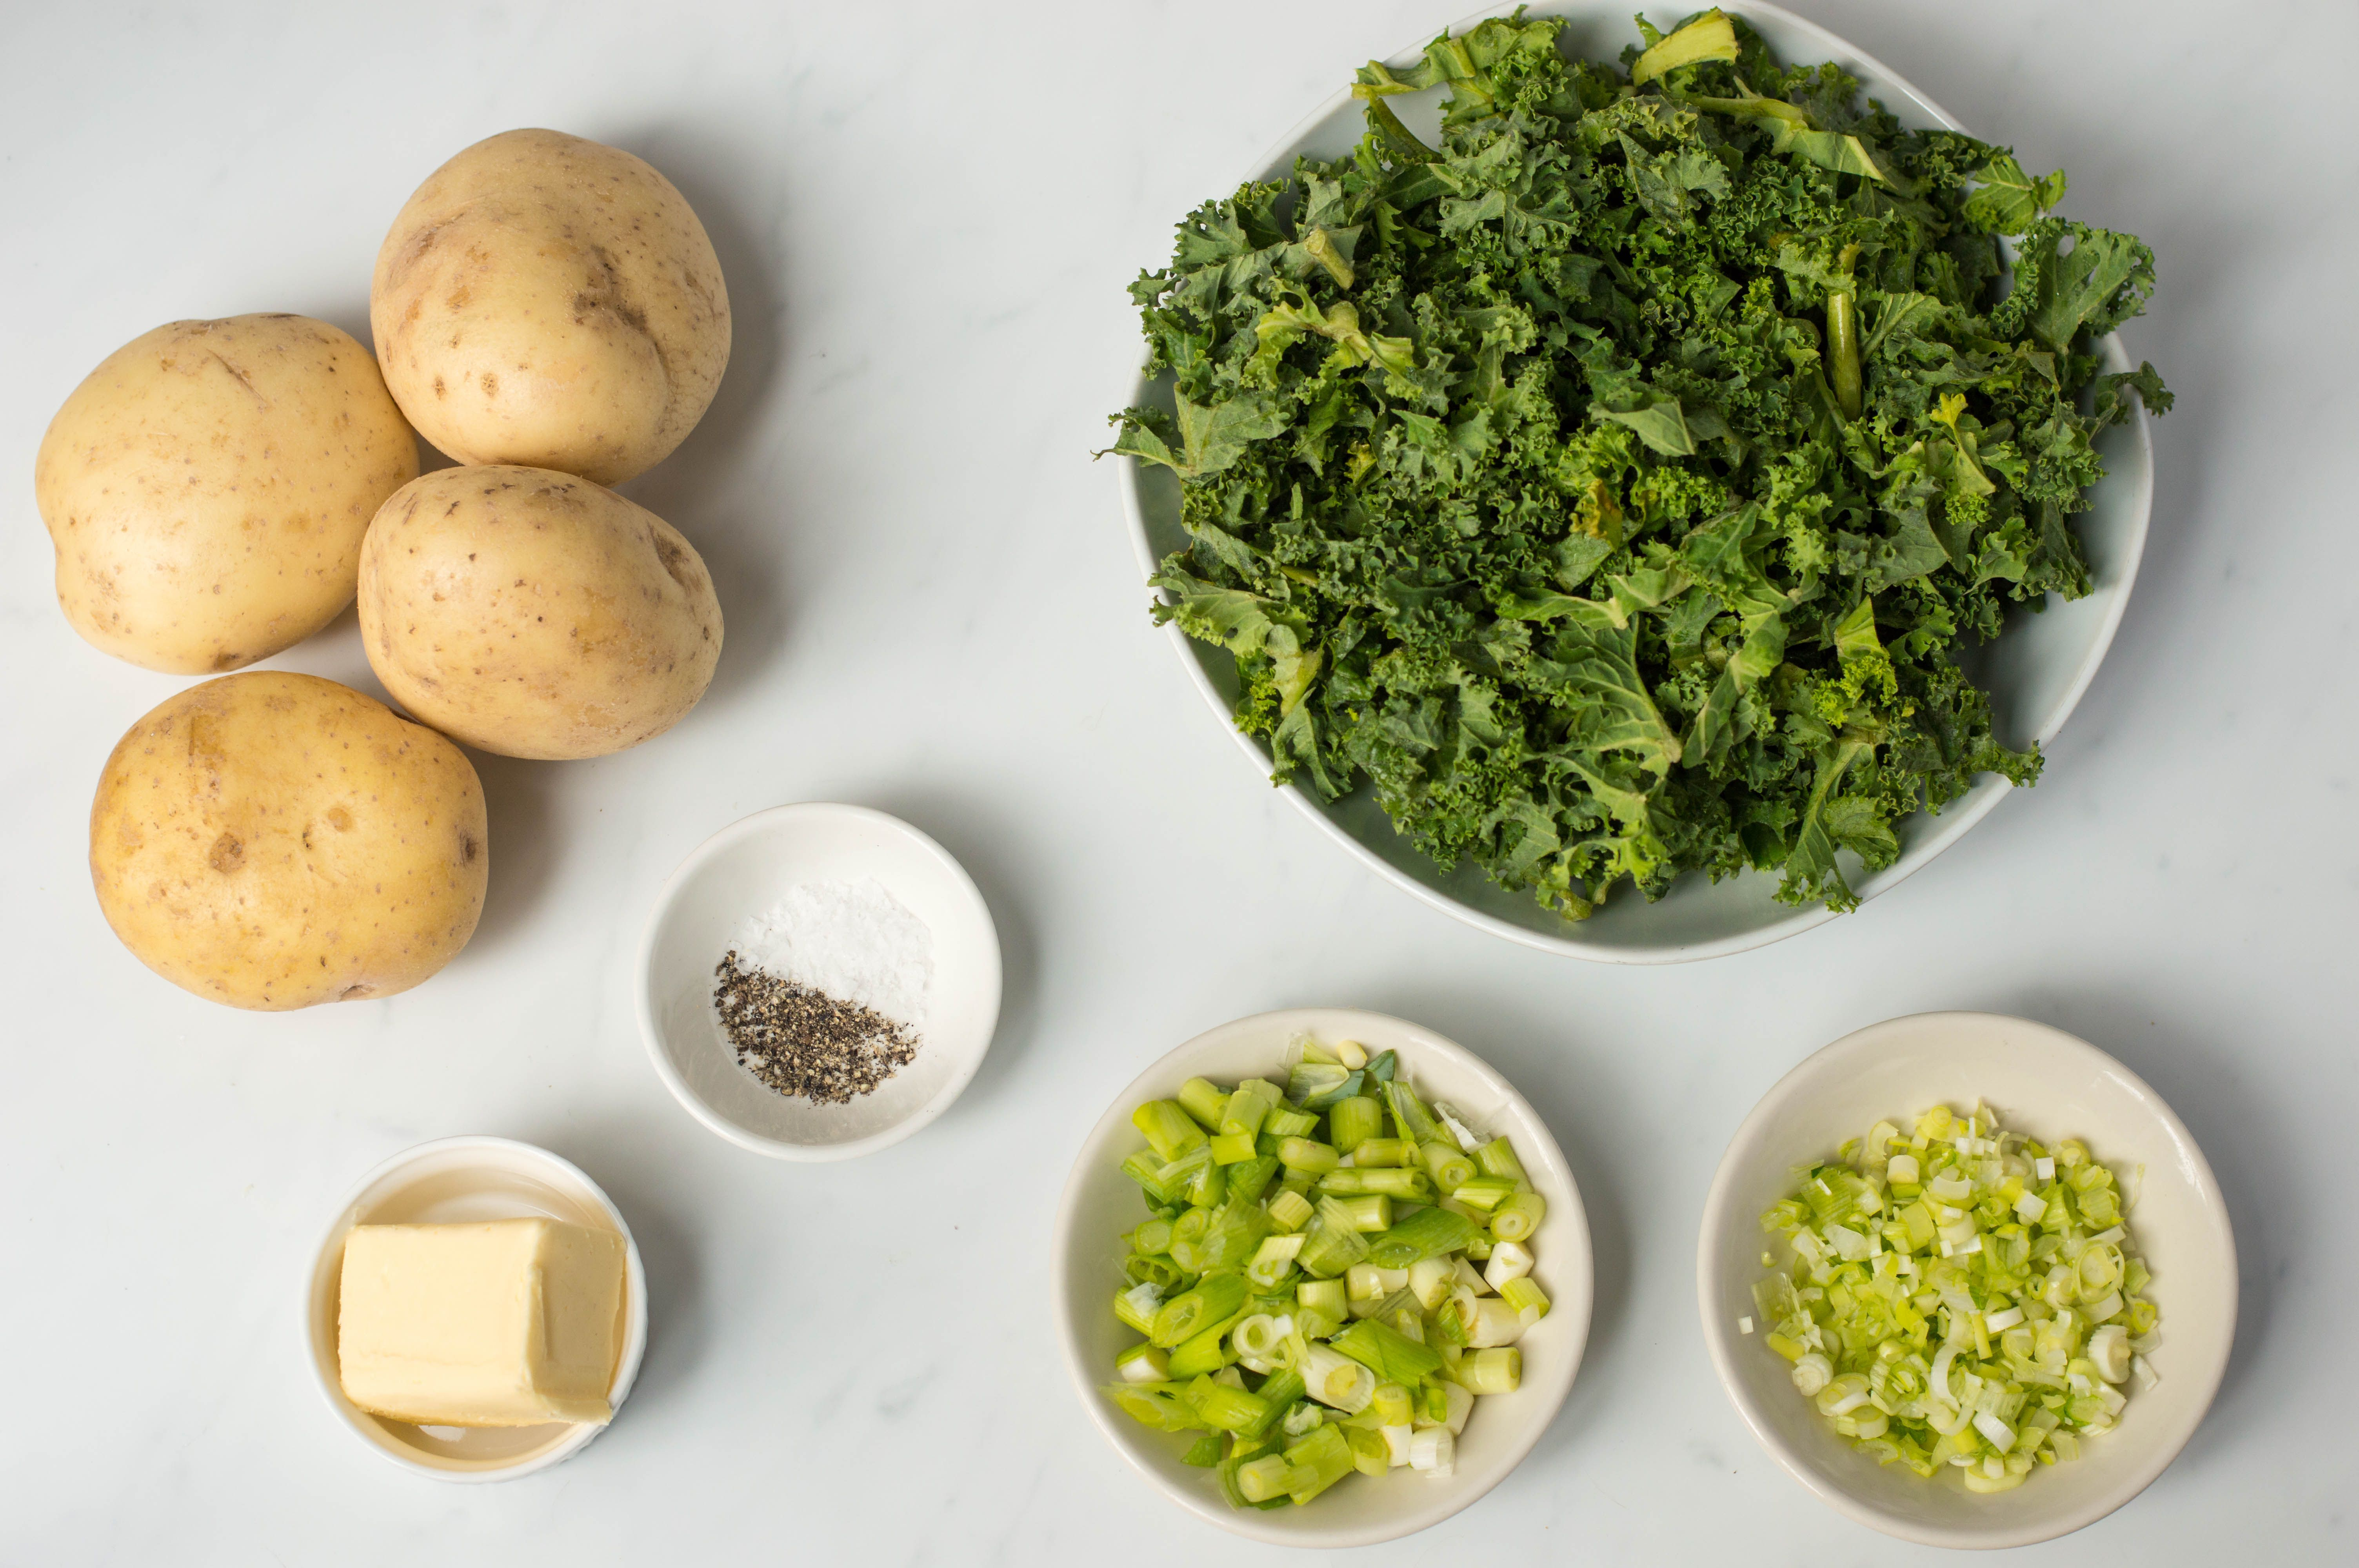 Ingredients for making colcannon